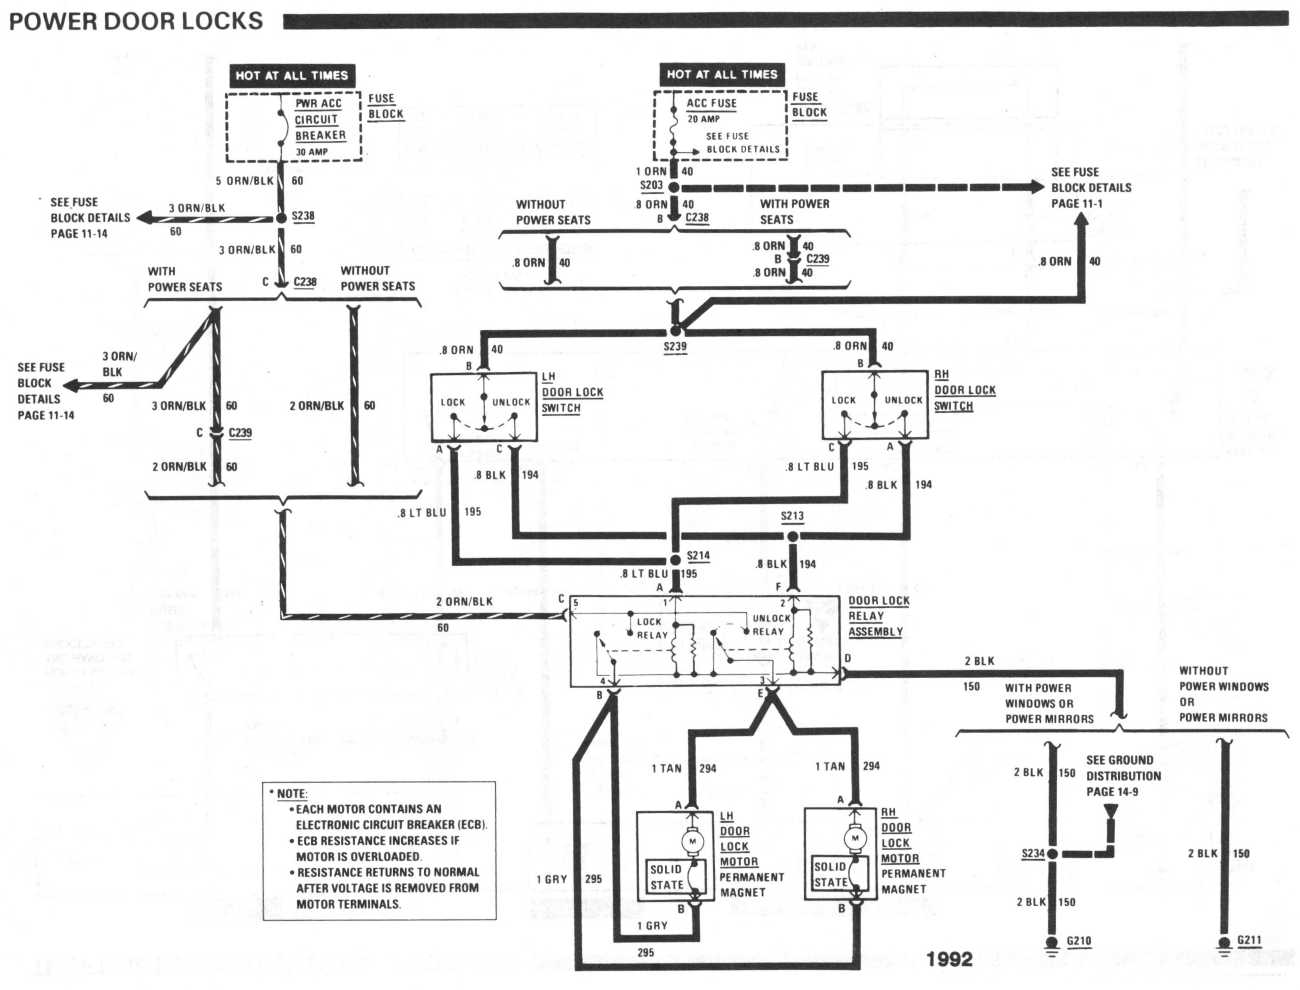 1999 Firebird Fuse Box Wiring Library Cd Player Diagram Http Wwwjustanswercom Ford 3gdn8dual Austinthirdgenorg Mkportdoor Locks